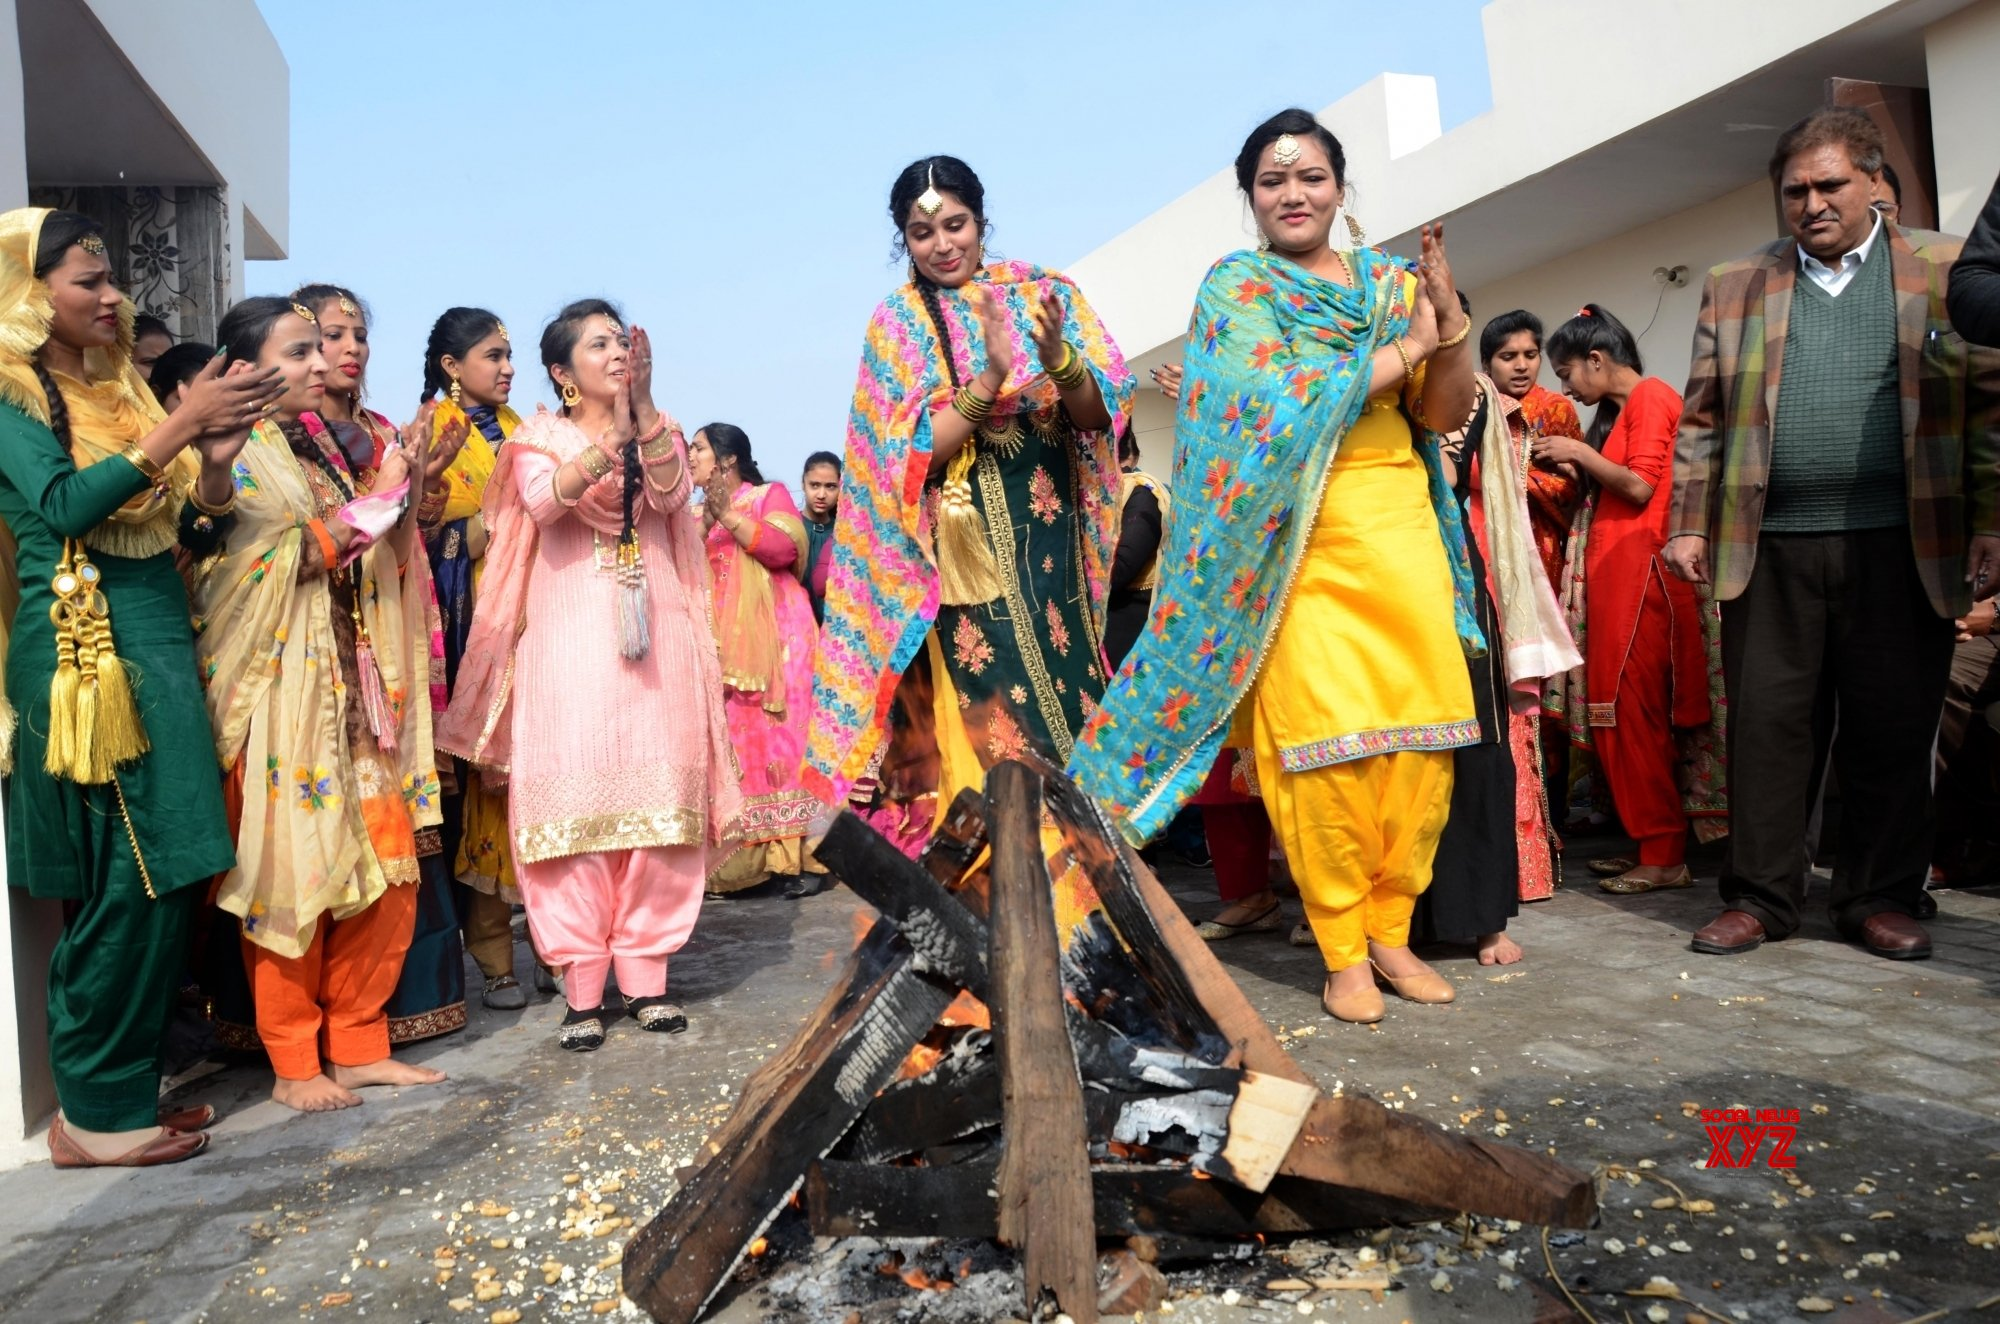 Amritsar: Students in traditional Punjabi dresses during the celebration of lohri on the eve of the Lohri festival #Gallery